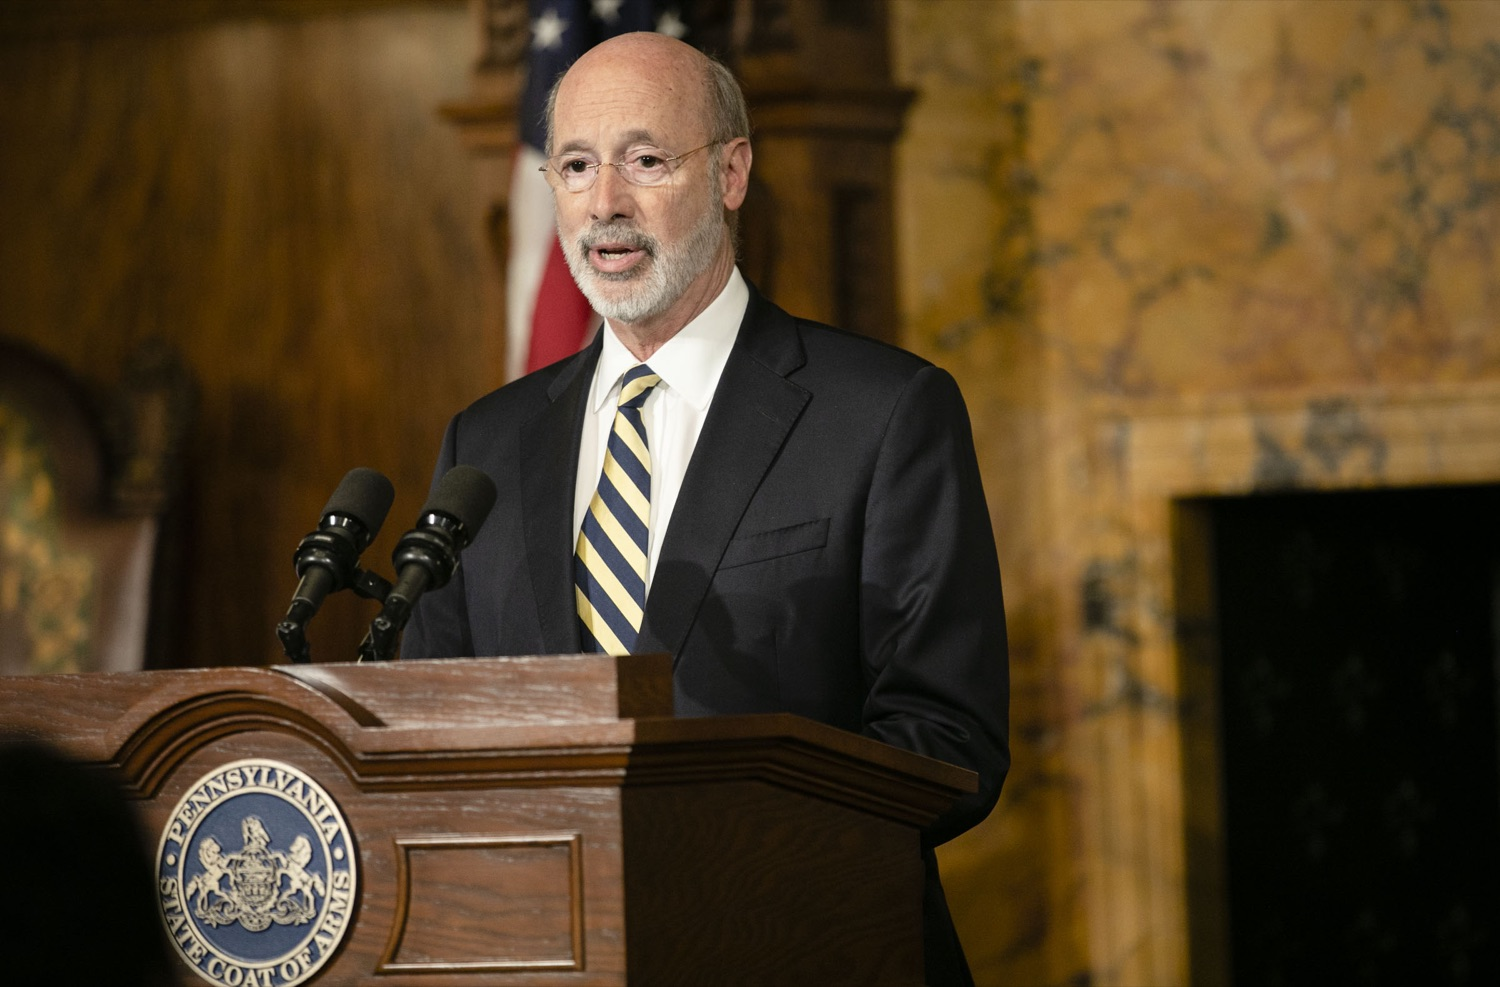 "<a href=""https://filesource.wostreaming.net/commonwealthofpa/photo/17564_GOV_aca_amb_005.jpg"" target=""_blank"">⇣ Download Photo<br></a>Governor Tom Wolf and Insurance Commissioner Jessica Altman advised Pennsylvanians that now is the time to buy health insurance on the federal exchange, healthcare.gov, as open enrollment continues for Affordable Care Act (ACA) plans through Dec. 15. Consumers have more options in Pennsylvania, and many will find they qualify for subsidies. November 7, 2019. Harrisburg, PA."